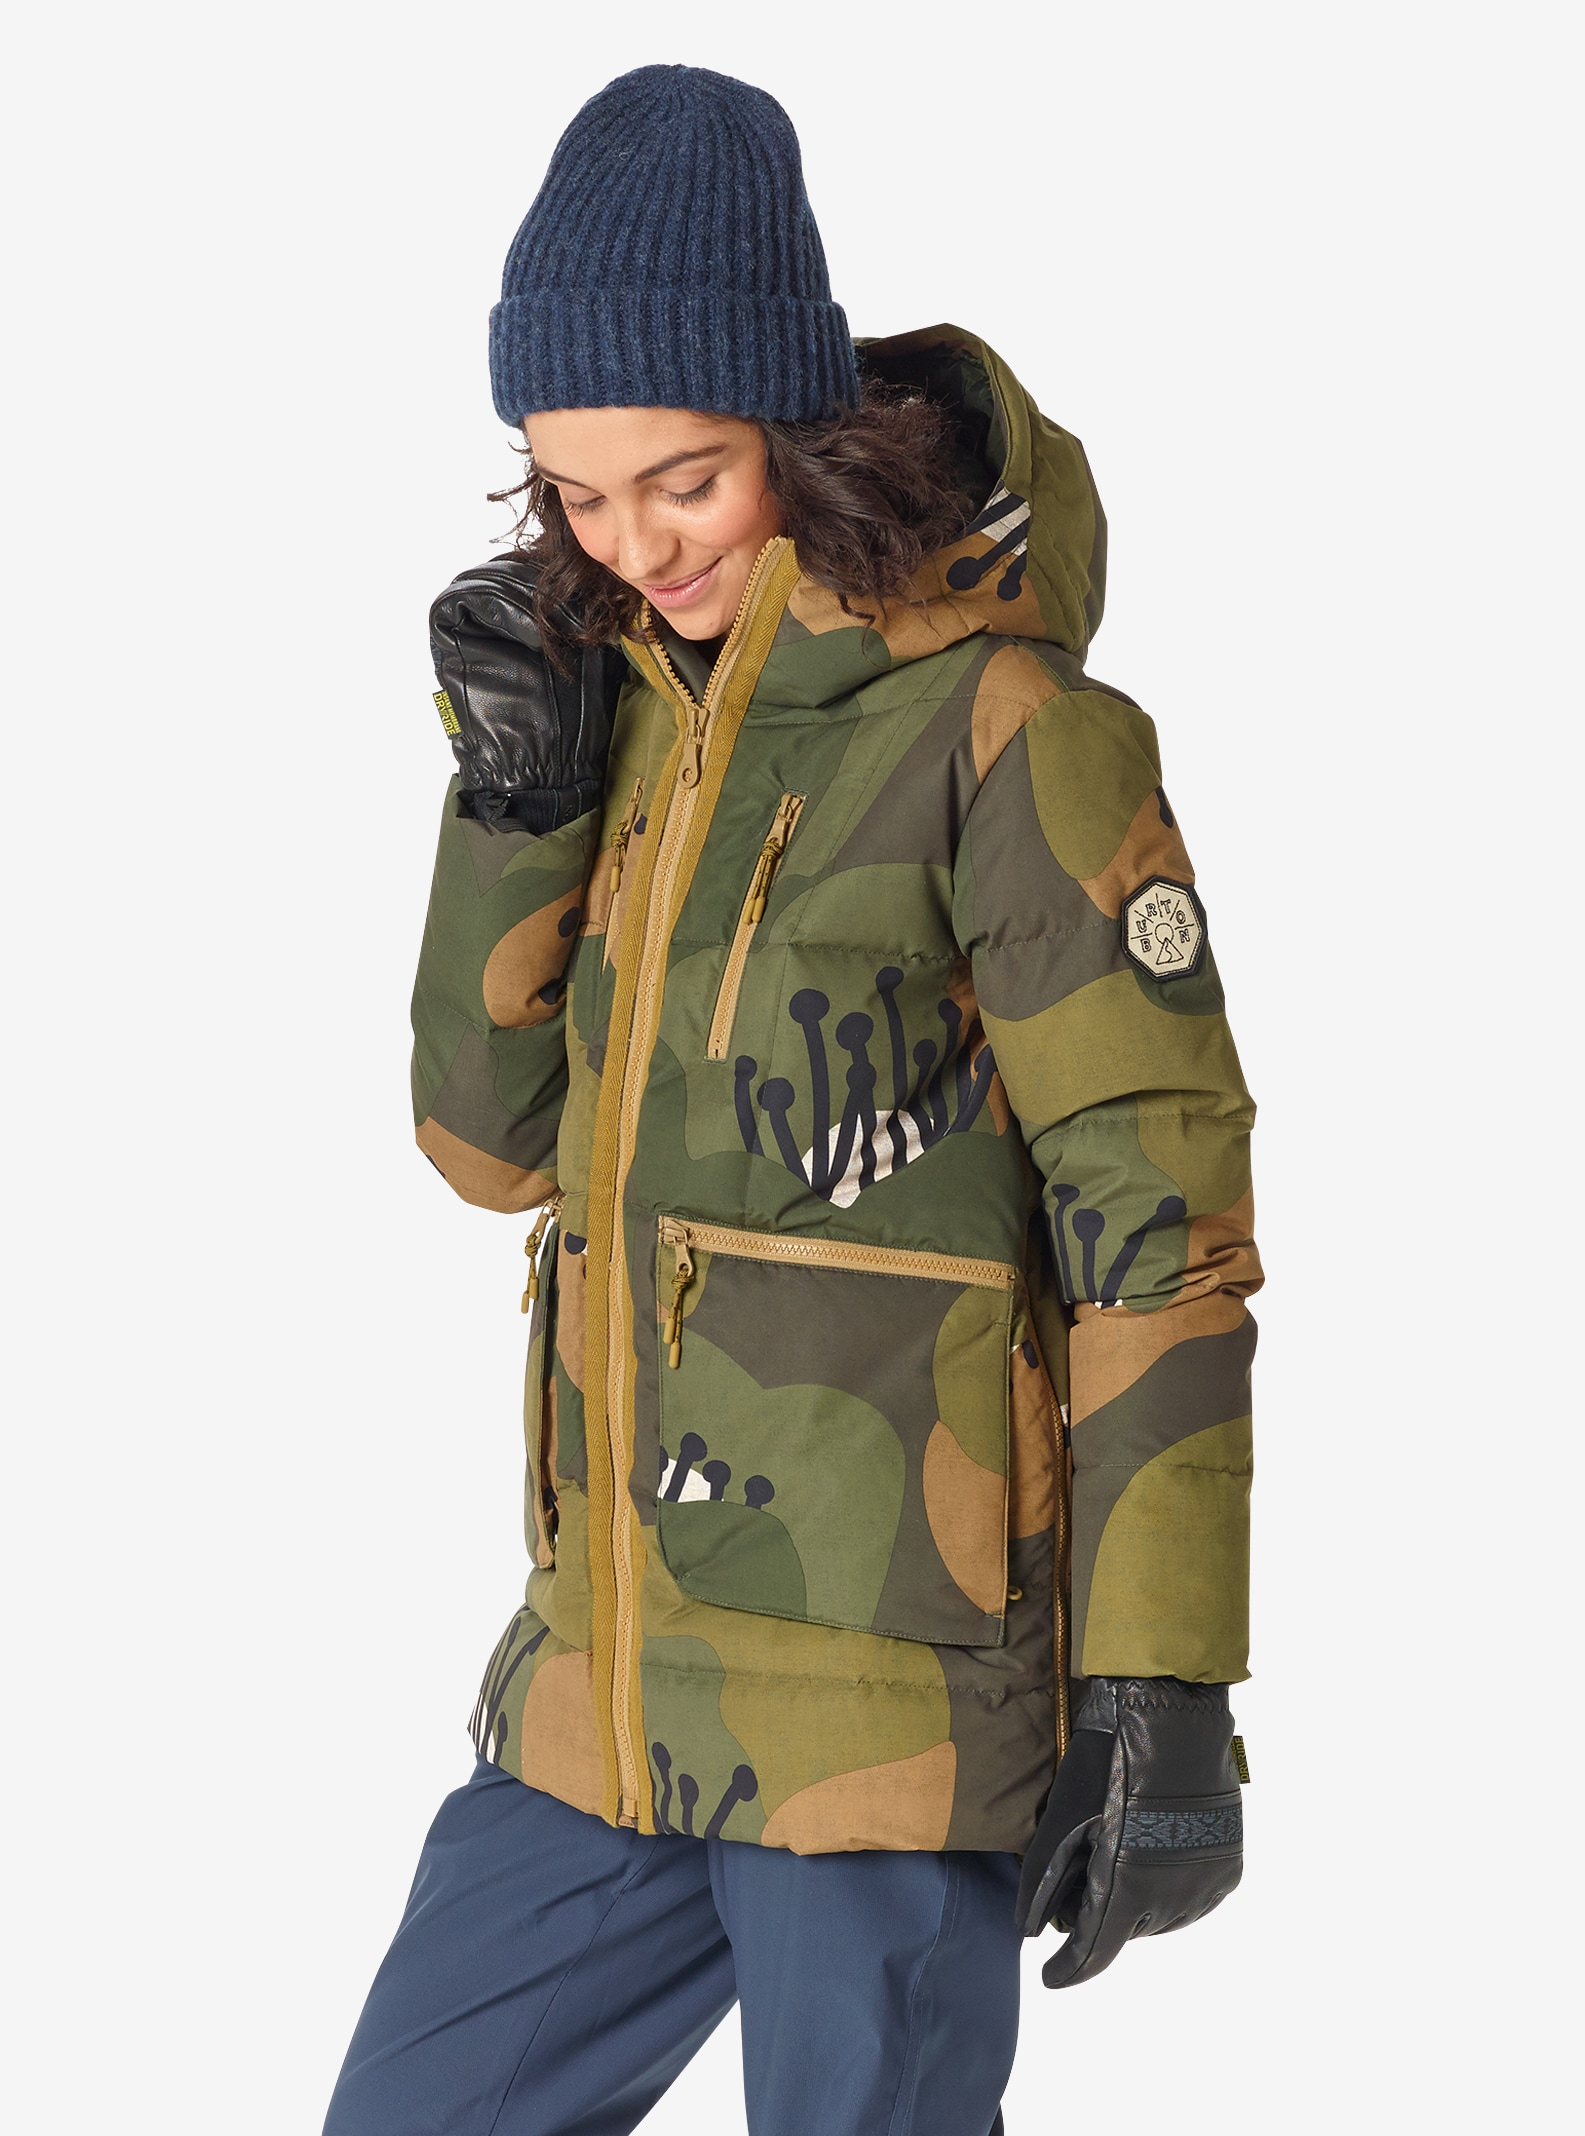 Women's Burton King Pine Down Jacket shown in Forest Poppyfield